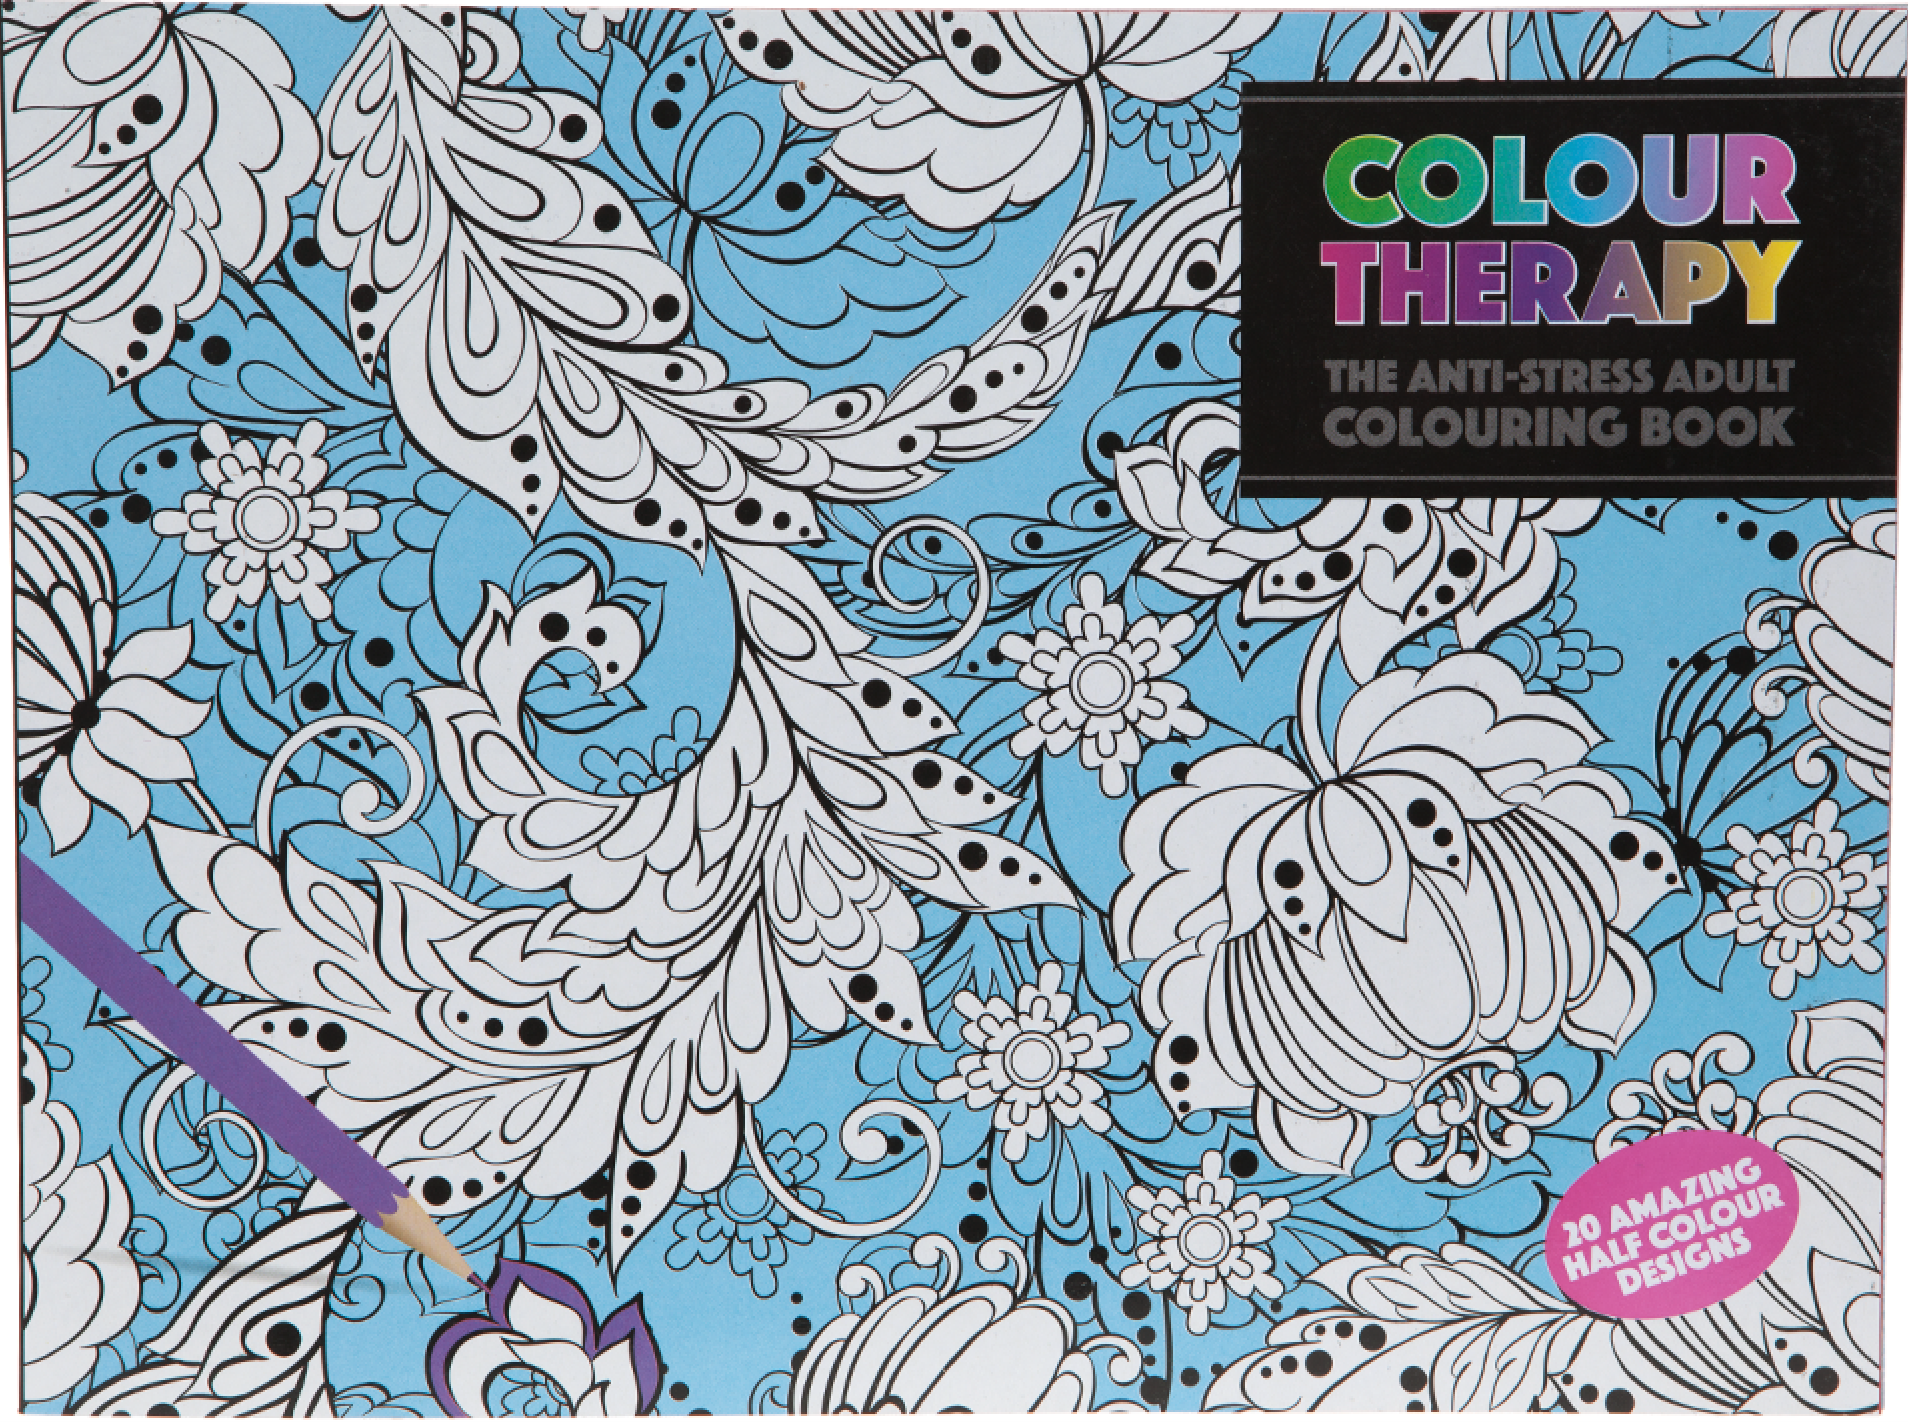 83 Colour Therapy Start To Relax With This Free Anti